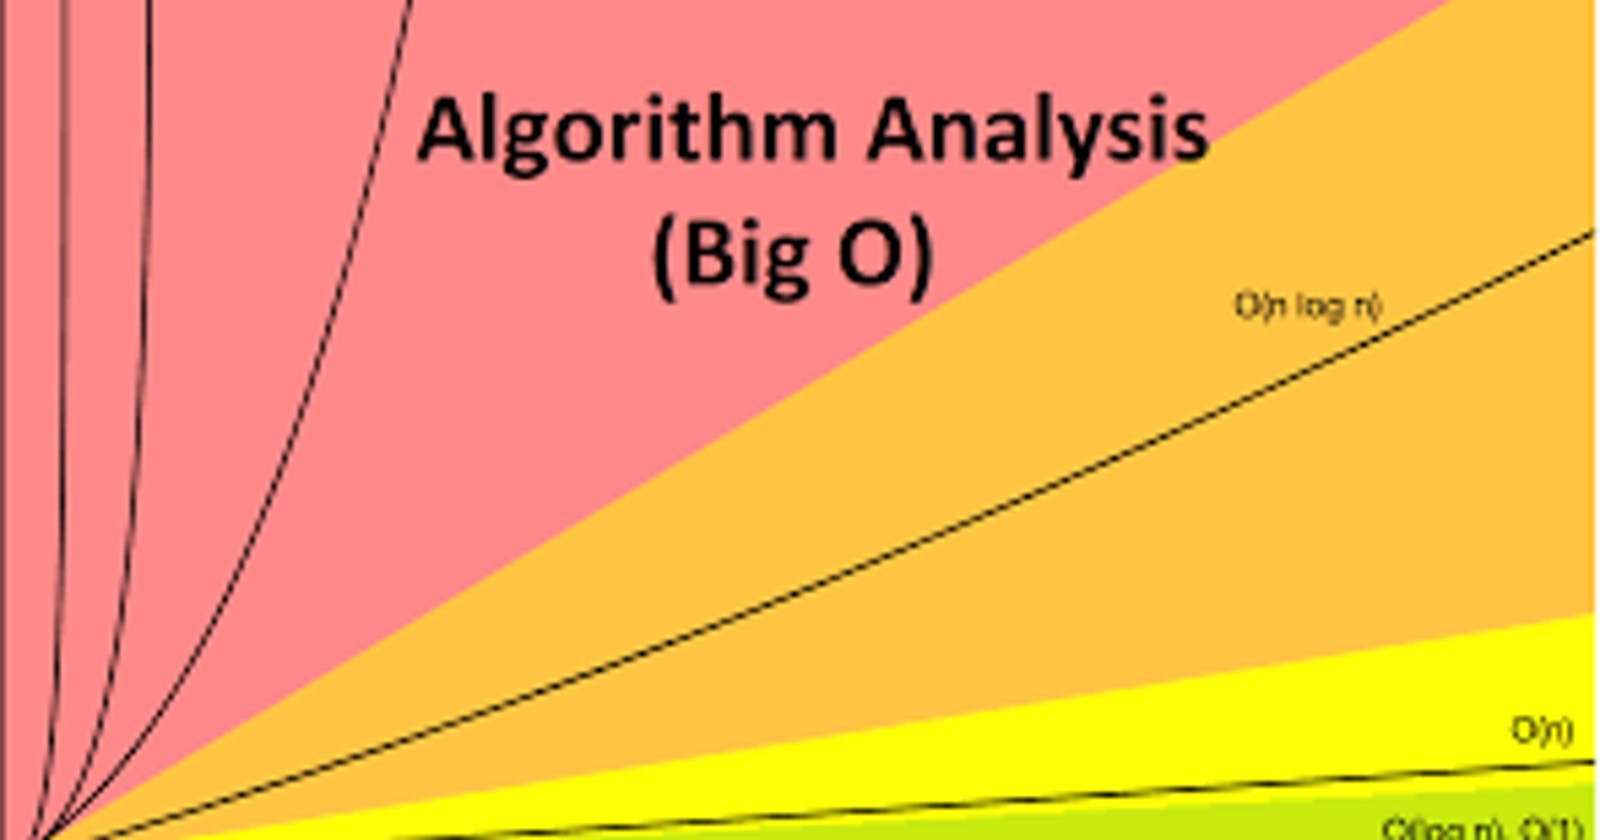 Type of Analysis and Asymptotic Notations